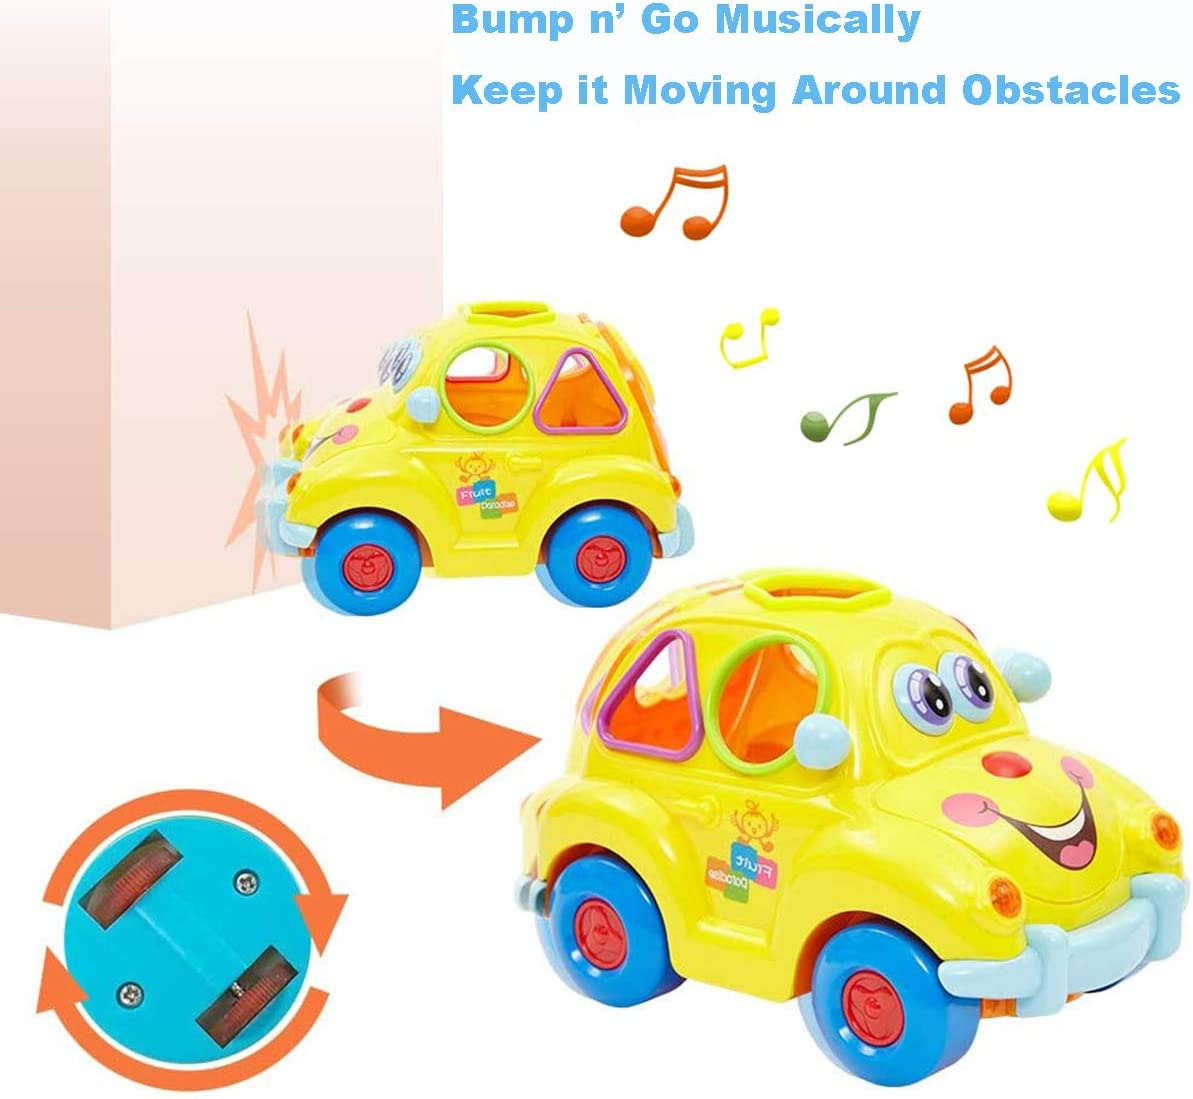 Early Developmental Educational Learning Montessori Toy for 1 2 3 Year Old Girls Boys Toddlers Kids HOLA Musical Car Toy Fruit Shape Sorter Omni-Directional Wheels Cute Car with Music//Lights//Blocks